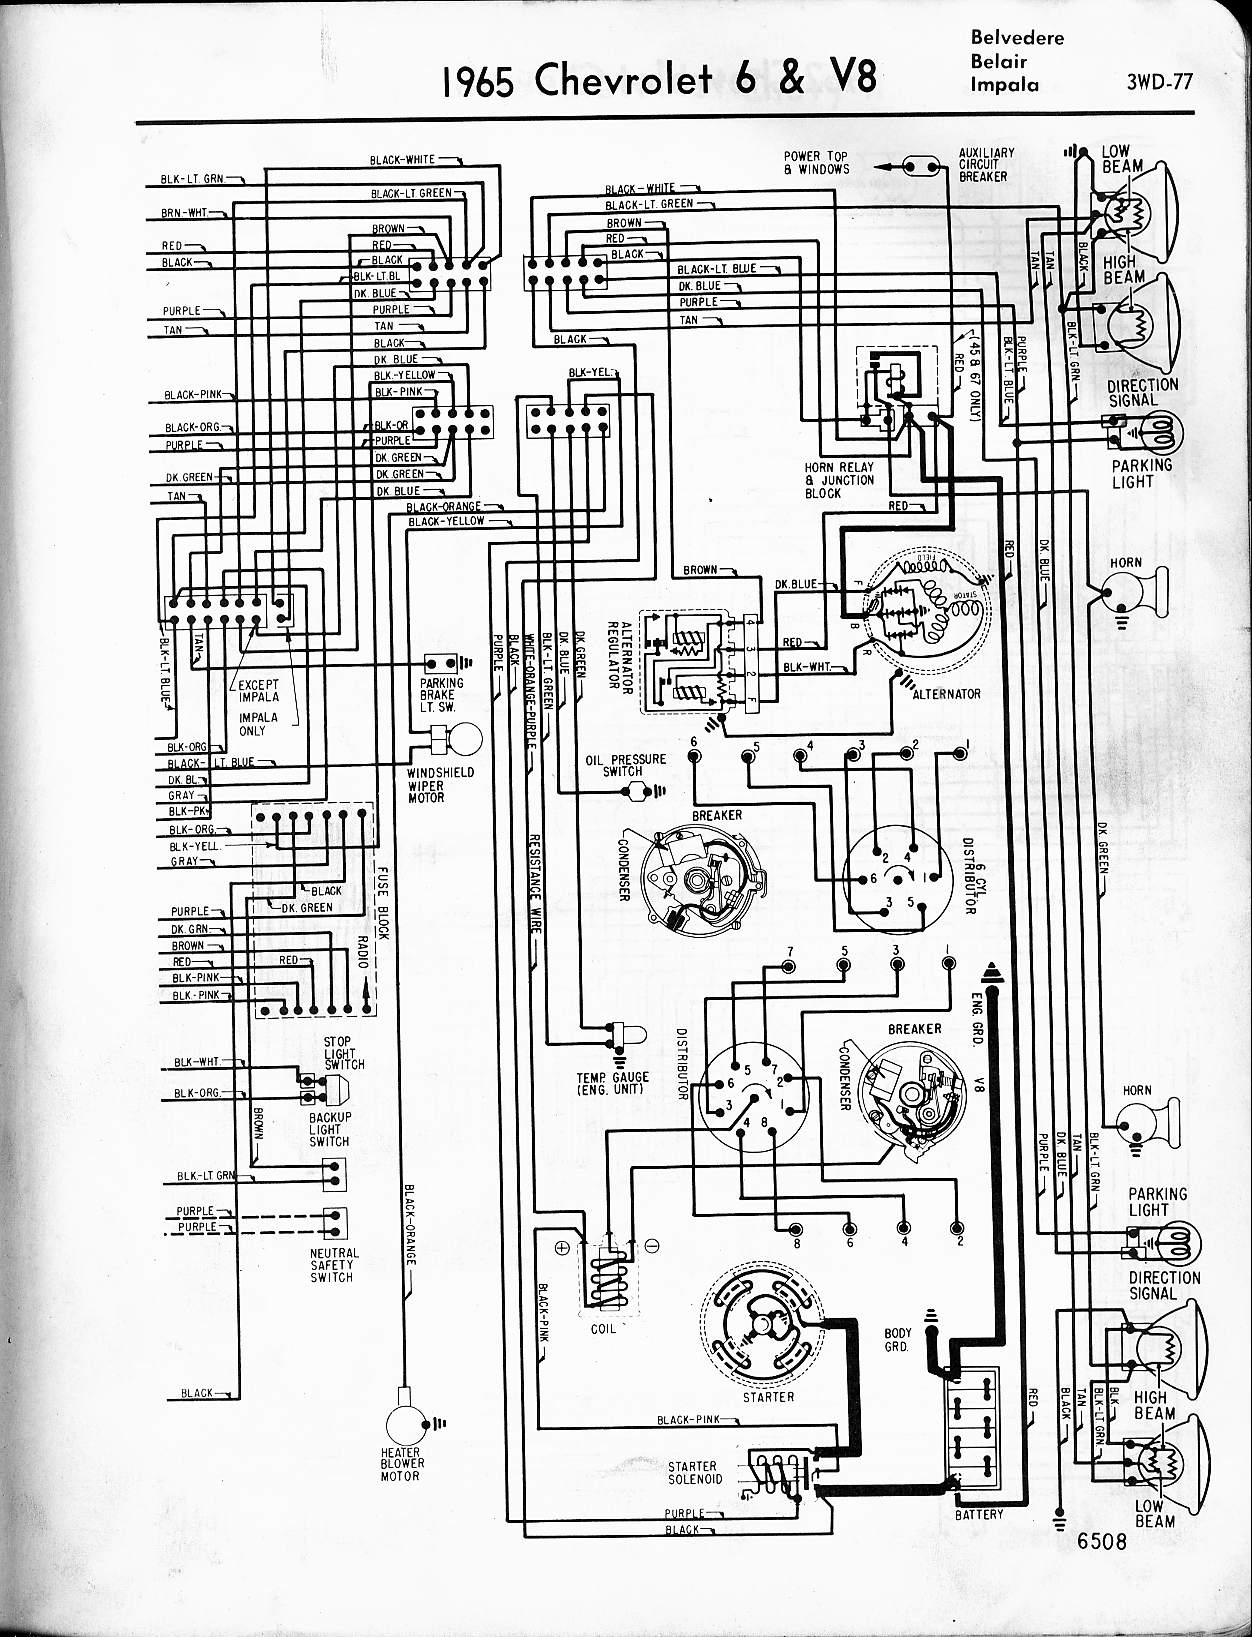 MWireChev65_3WD 077 chevy diagrams 1964 impala wiring diagram at fashall.co